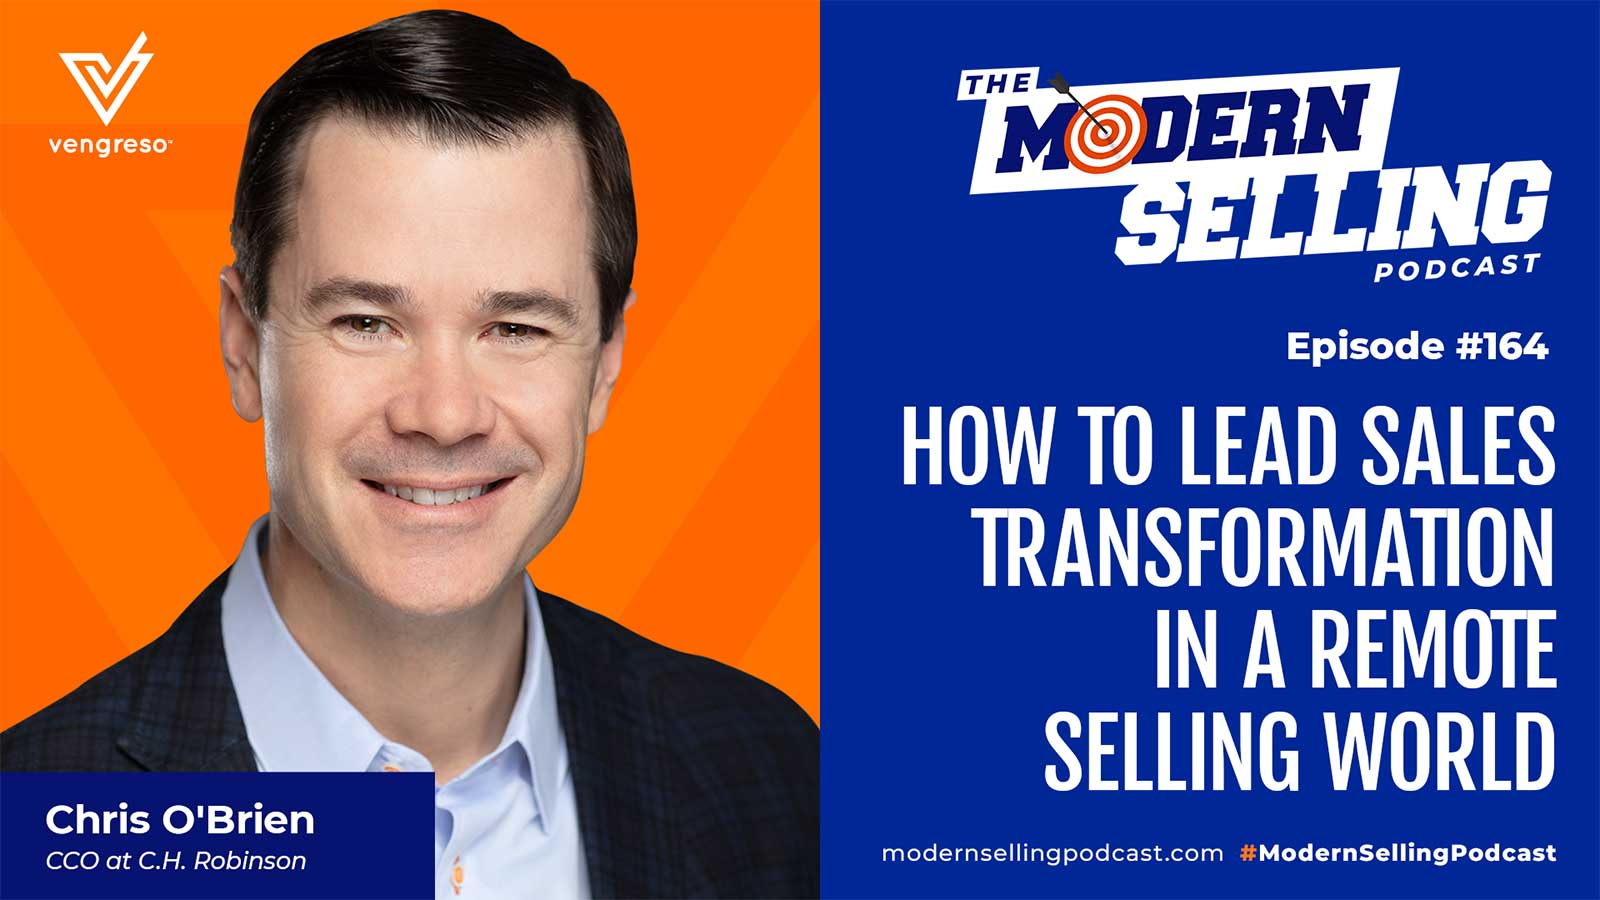 How to lead sales transformation podcast